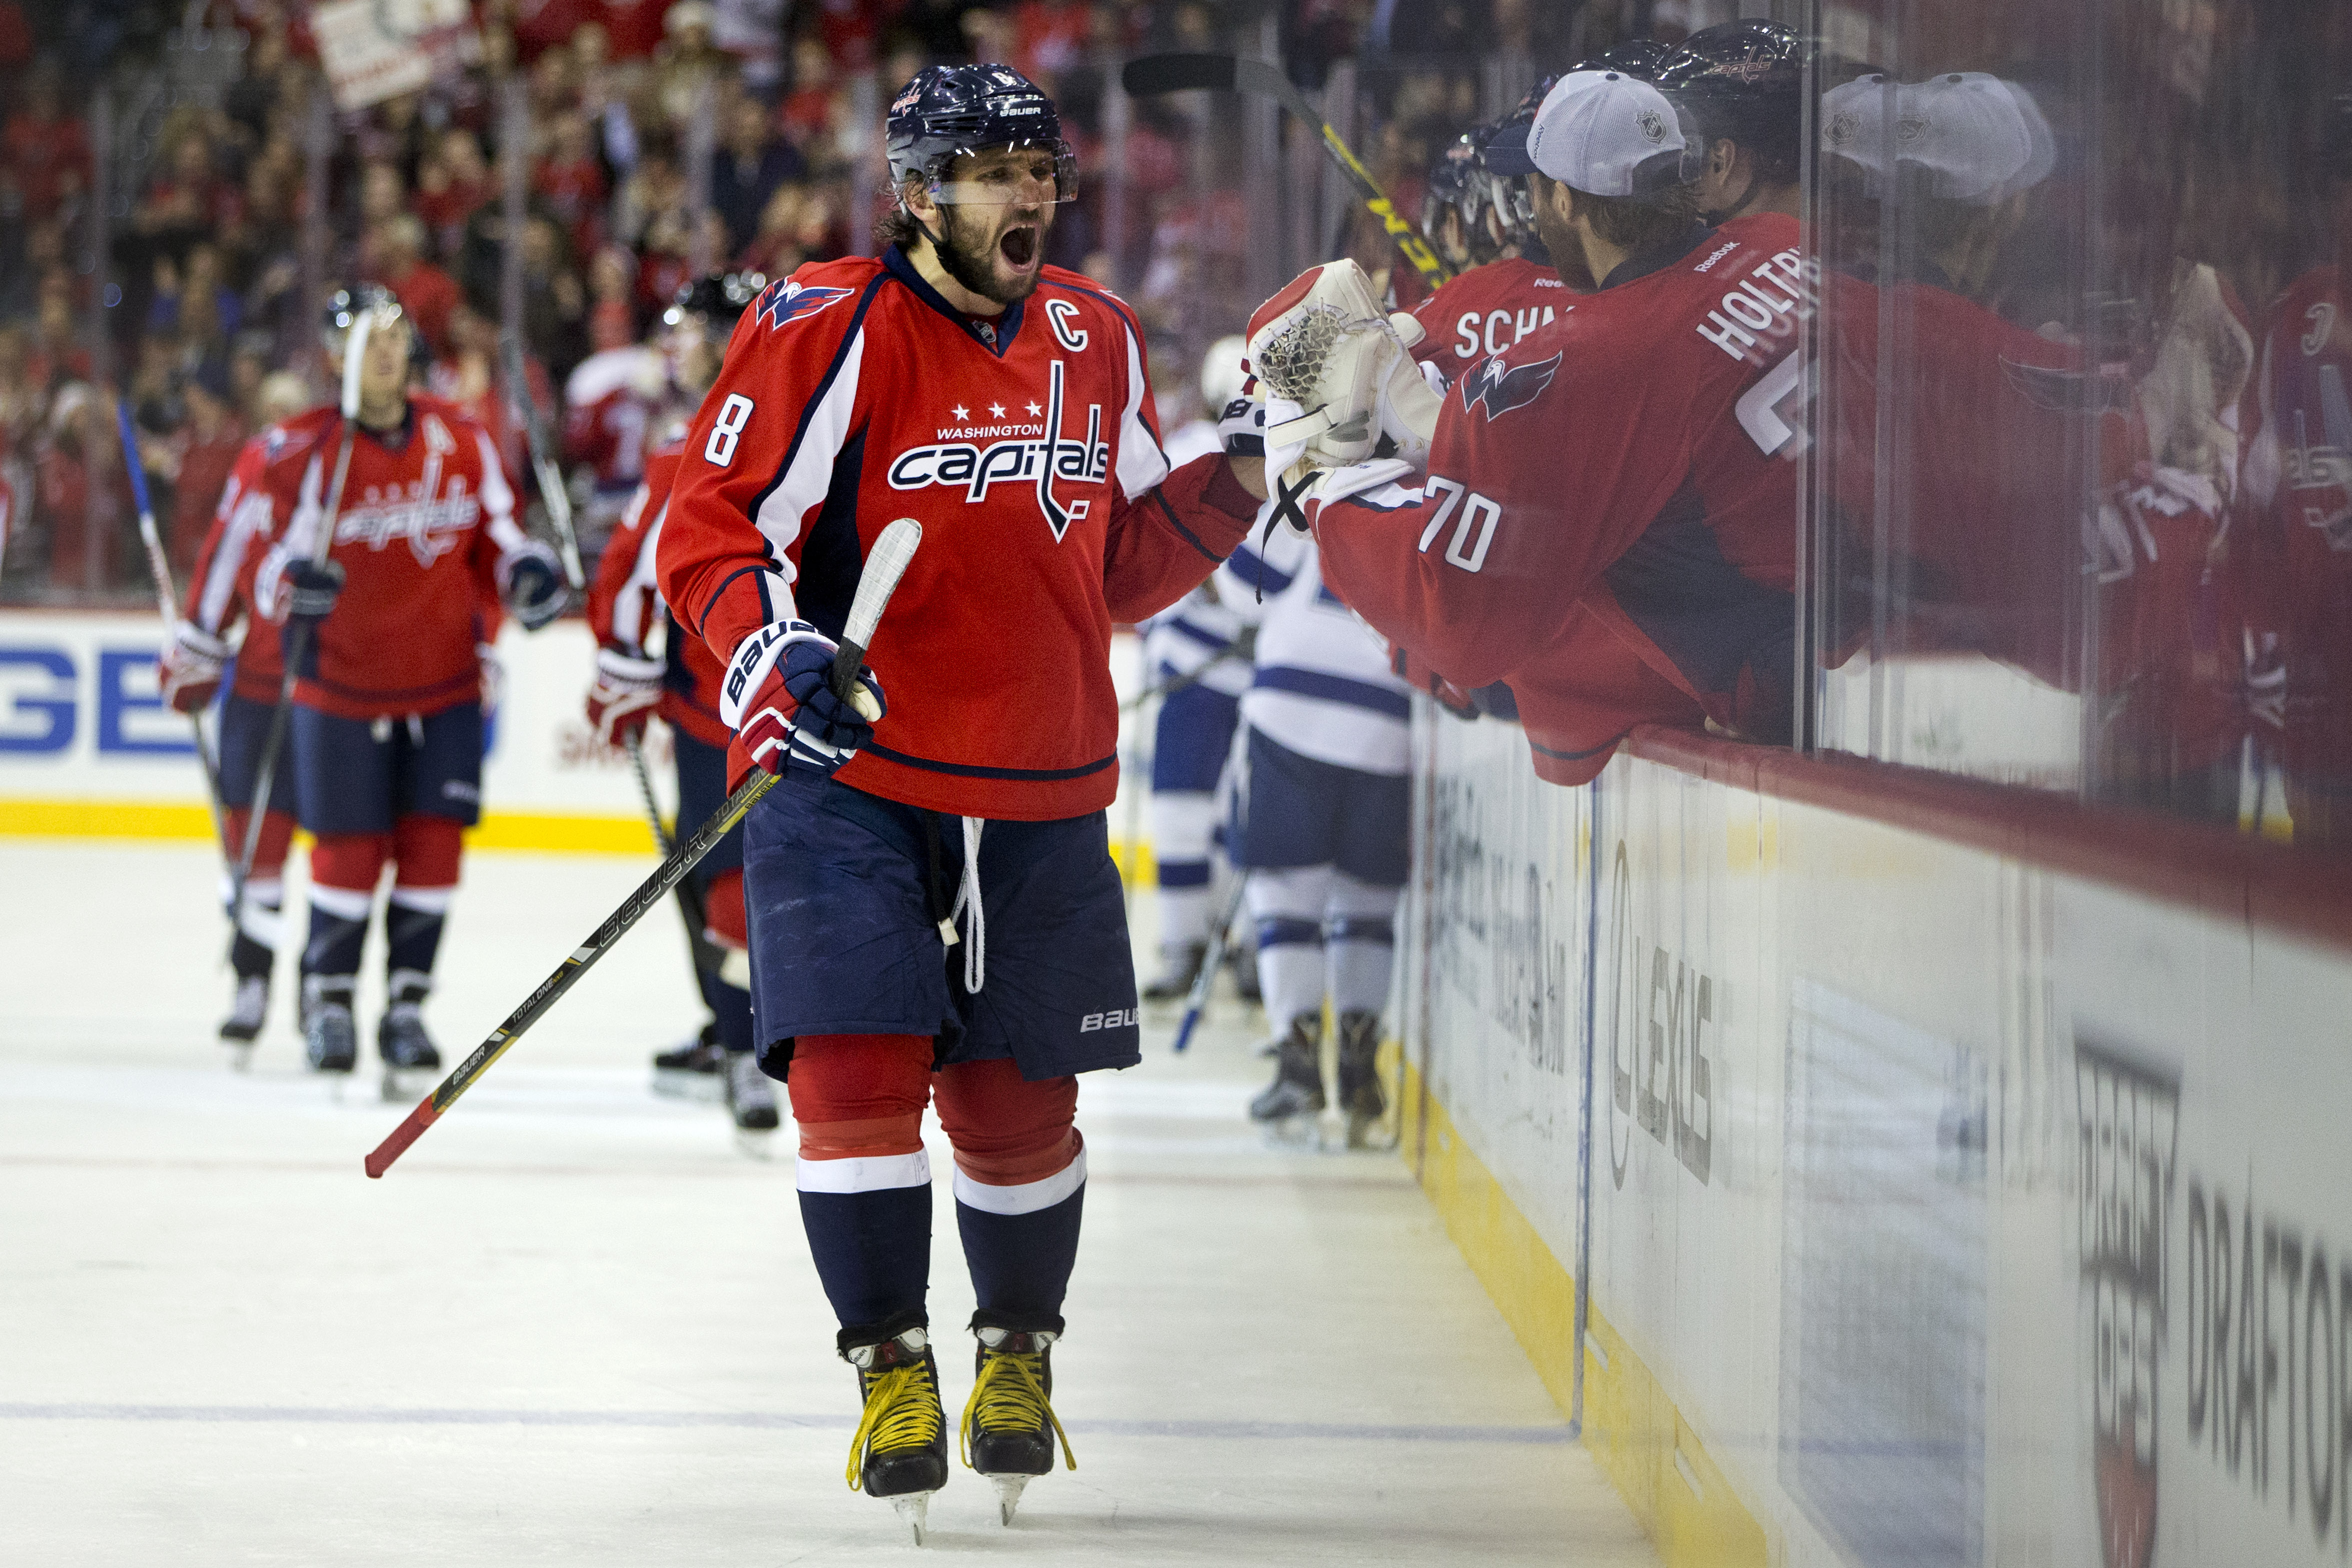 Washington Capitals left wing Alex Ovechkin (8), from Russia, high fives goalie Braden Holtby (70), as he reacts after the Capitals scored against the Tampa Bay Lightning during the third period of a hockey game at the Verizon Center in Washington on Frid